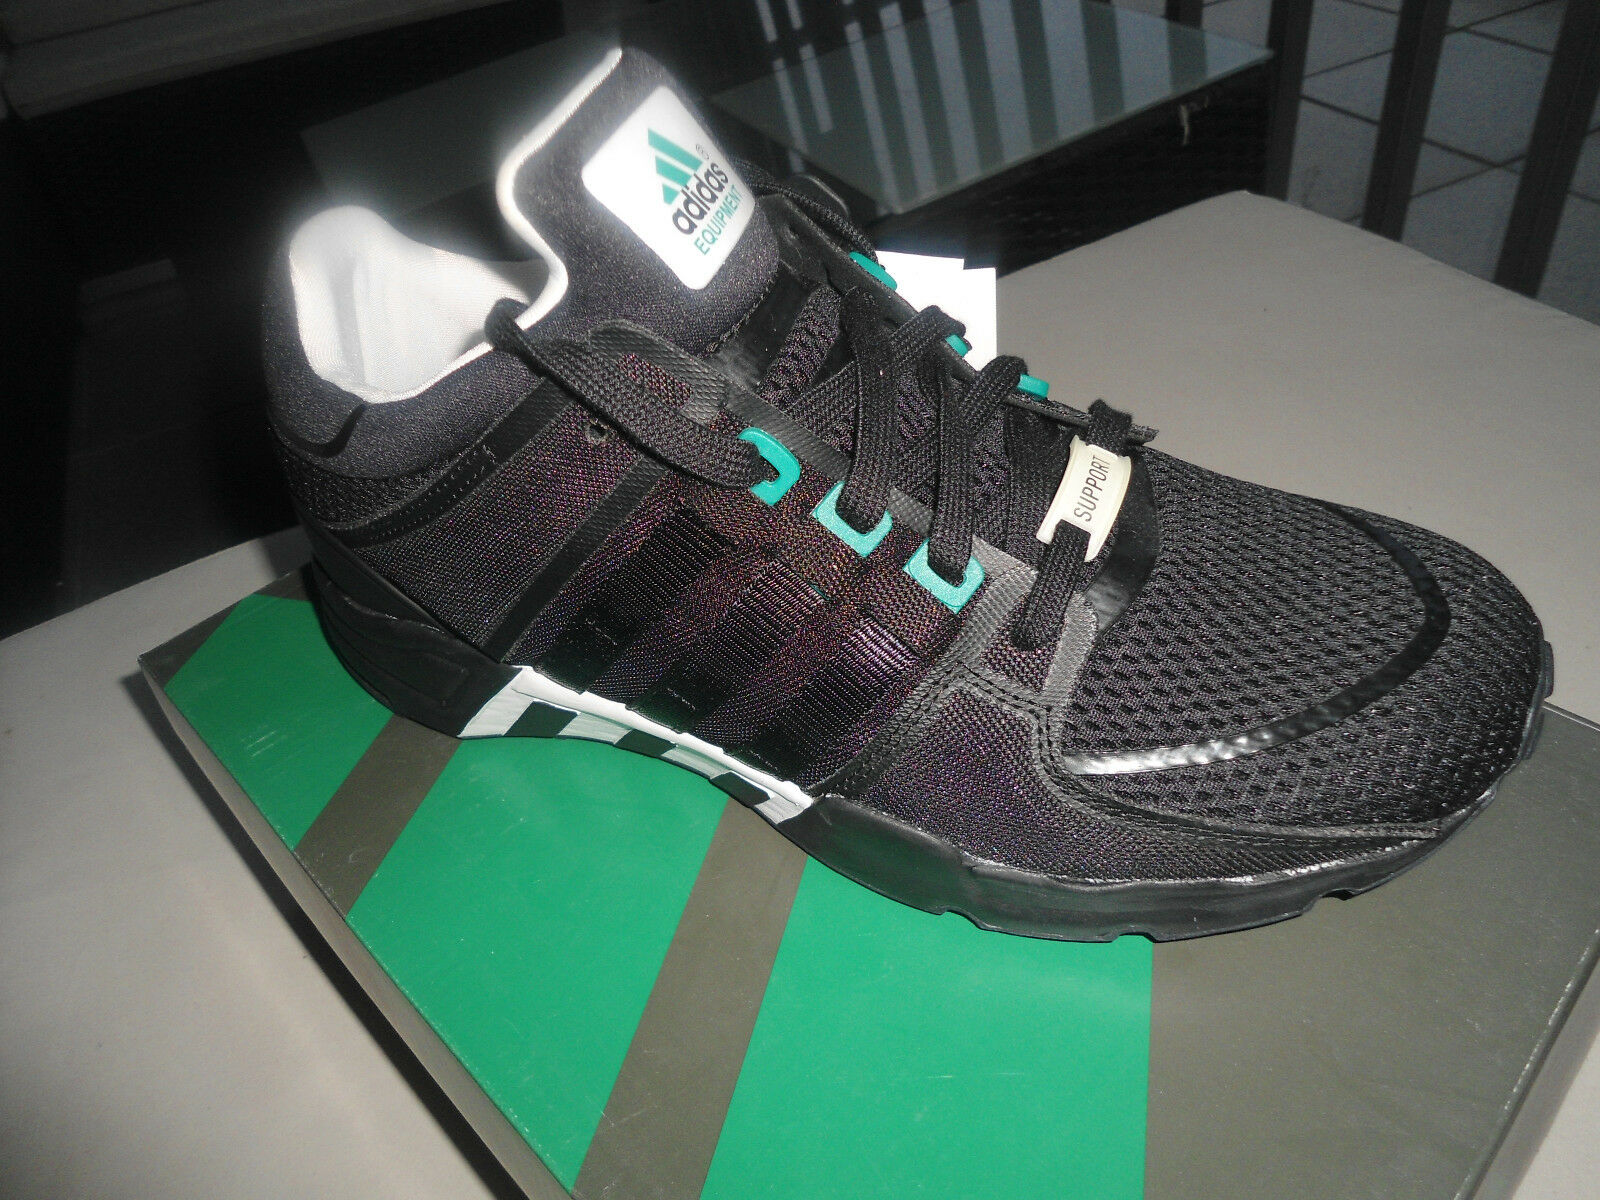 Adidas Equipment Support  2.0 43 1/3 ///  NMD ADV Guidance Zx 8000 9000